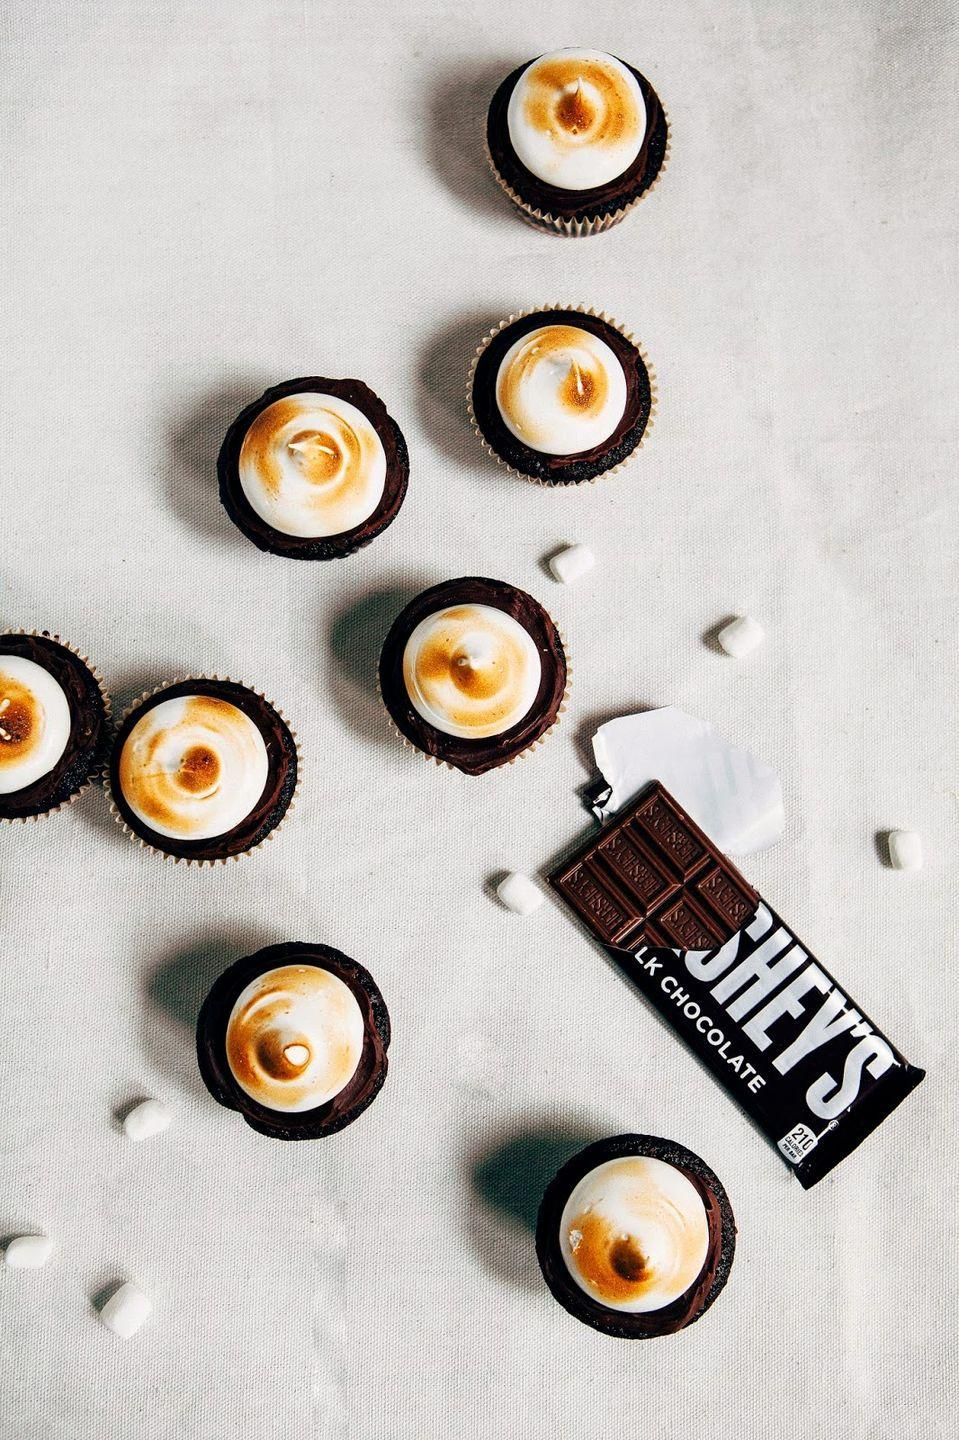 """<p>What's more American than a good, old-fashioned campfire? Oh yeah, s'mores.<em><br></em></p><p><a href=""""http://www.hummingbirdhigh.com/2015/02/triple-chocolate-double-graham-smores.html"""" rel=""""nofollow noopener"""" target=""""_blank"""" data-ylk=""""slk:Get the recipe from Hummingbird High »"""" class=""""link rapid-noclick-resp""""><em>Get the recipe from Hummingbird High »</em></a></p>"""